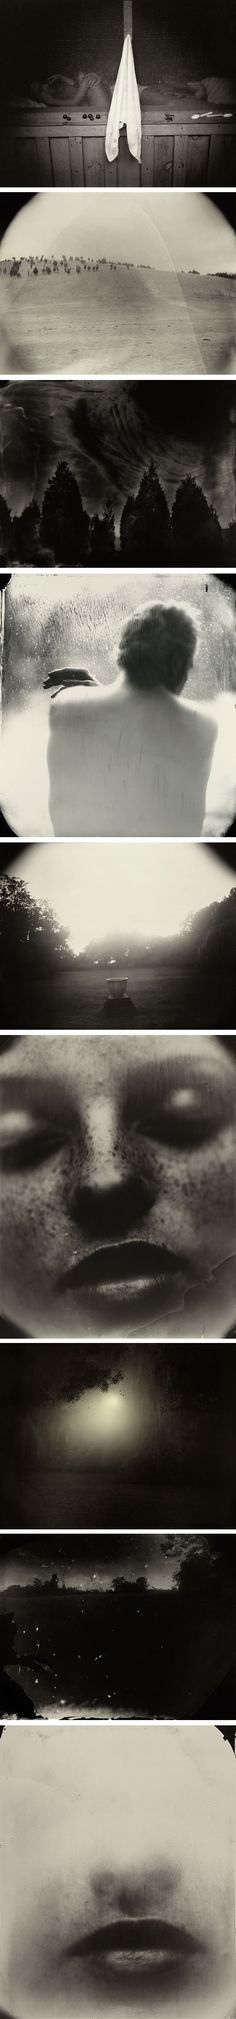 Photography by Sally Mann